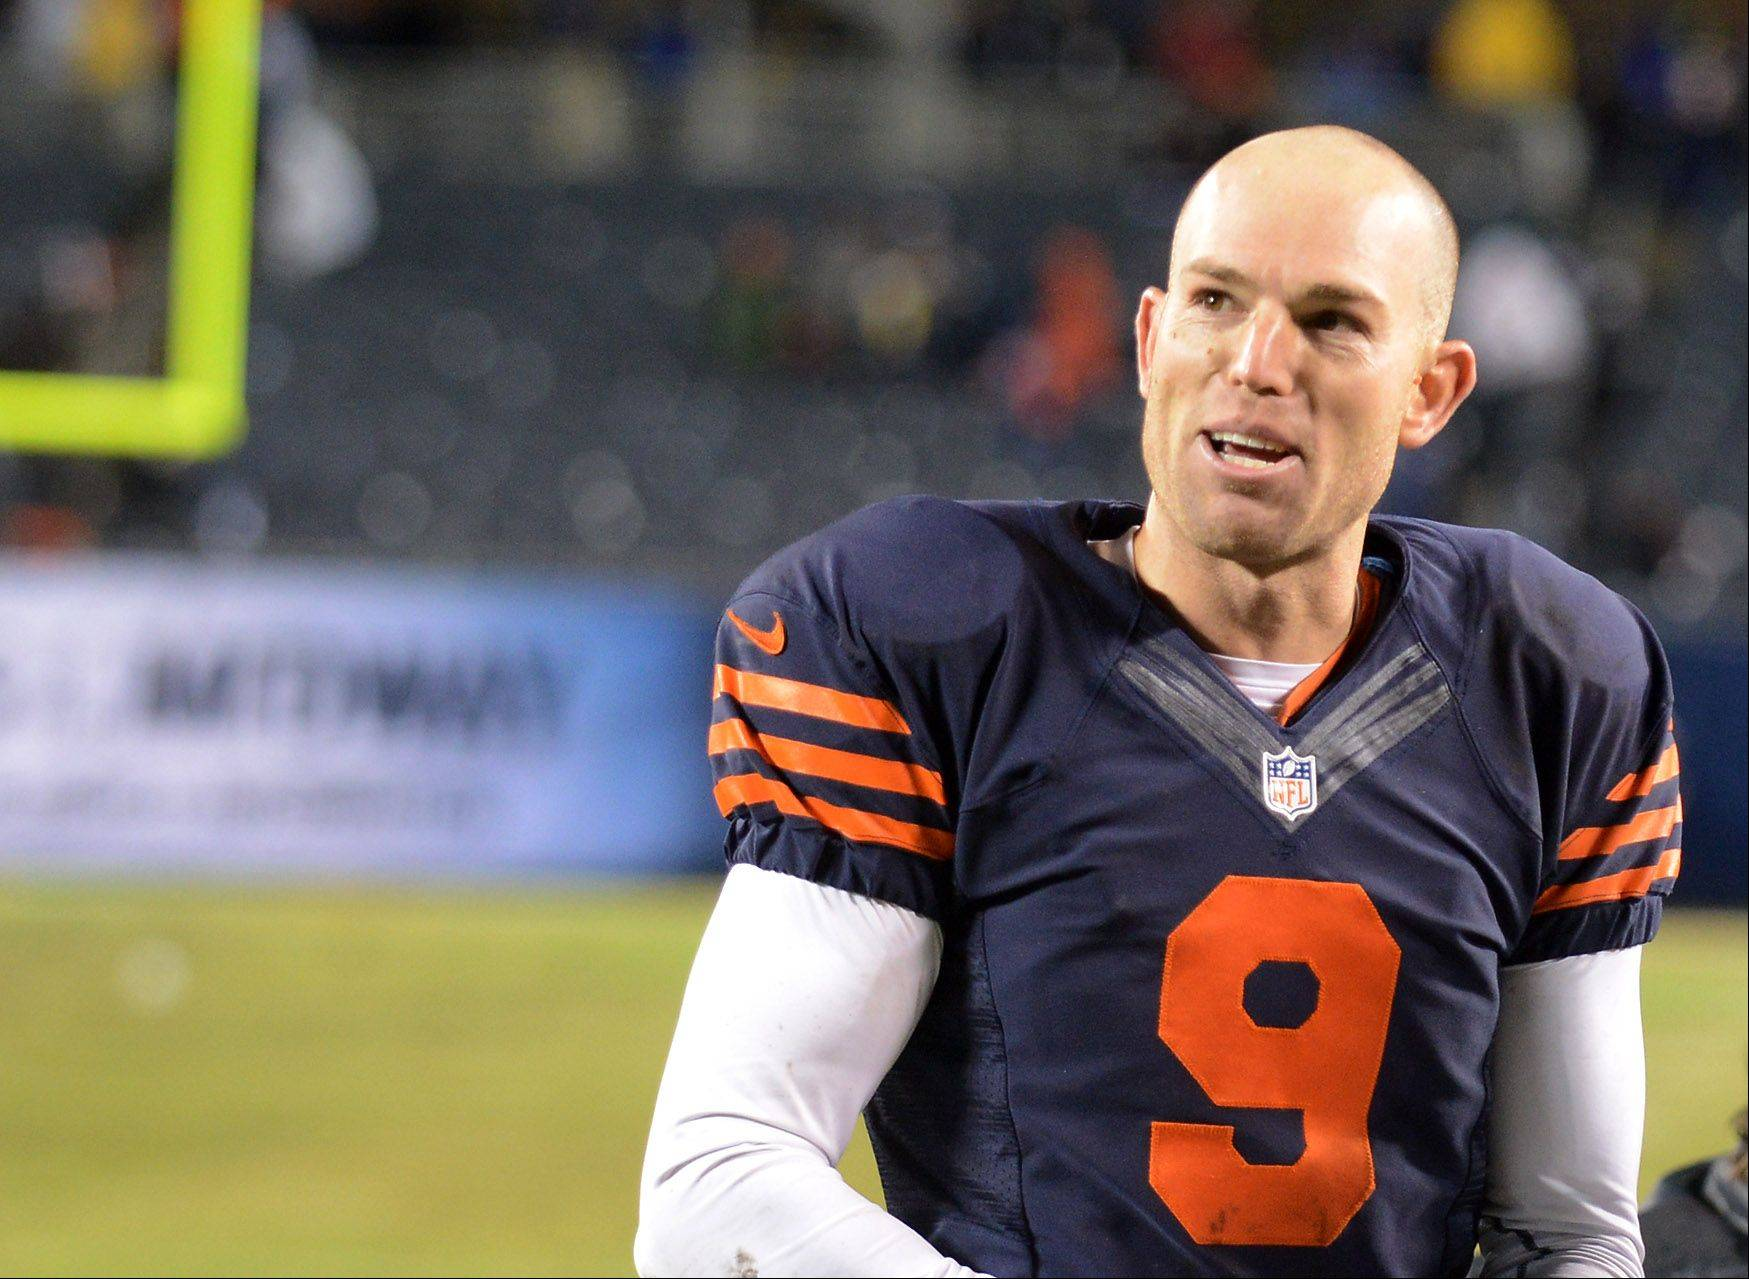 Bears kicker Robbie Gould smiles as he comes off the field after kicking the game-winning field goal in overtime against the Baltimore Ravens.